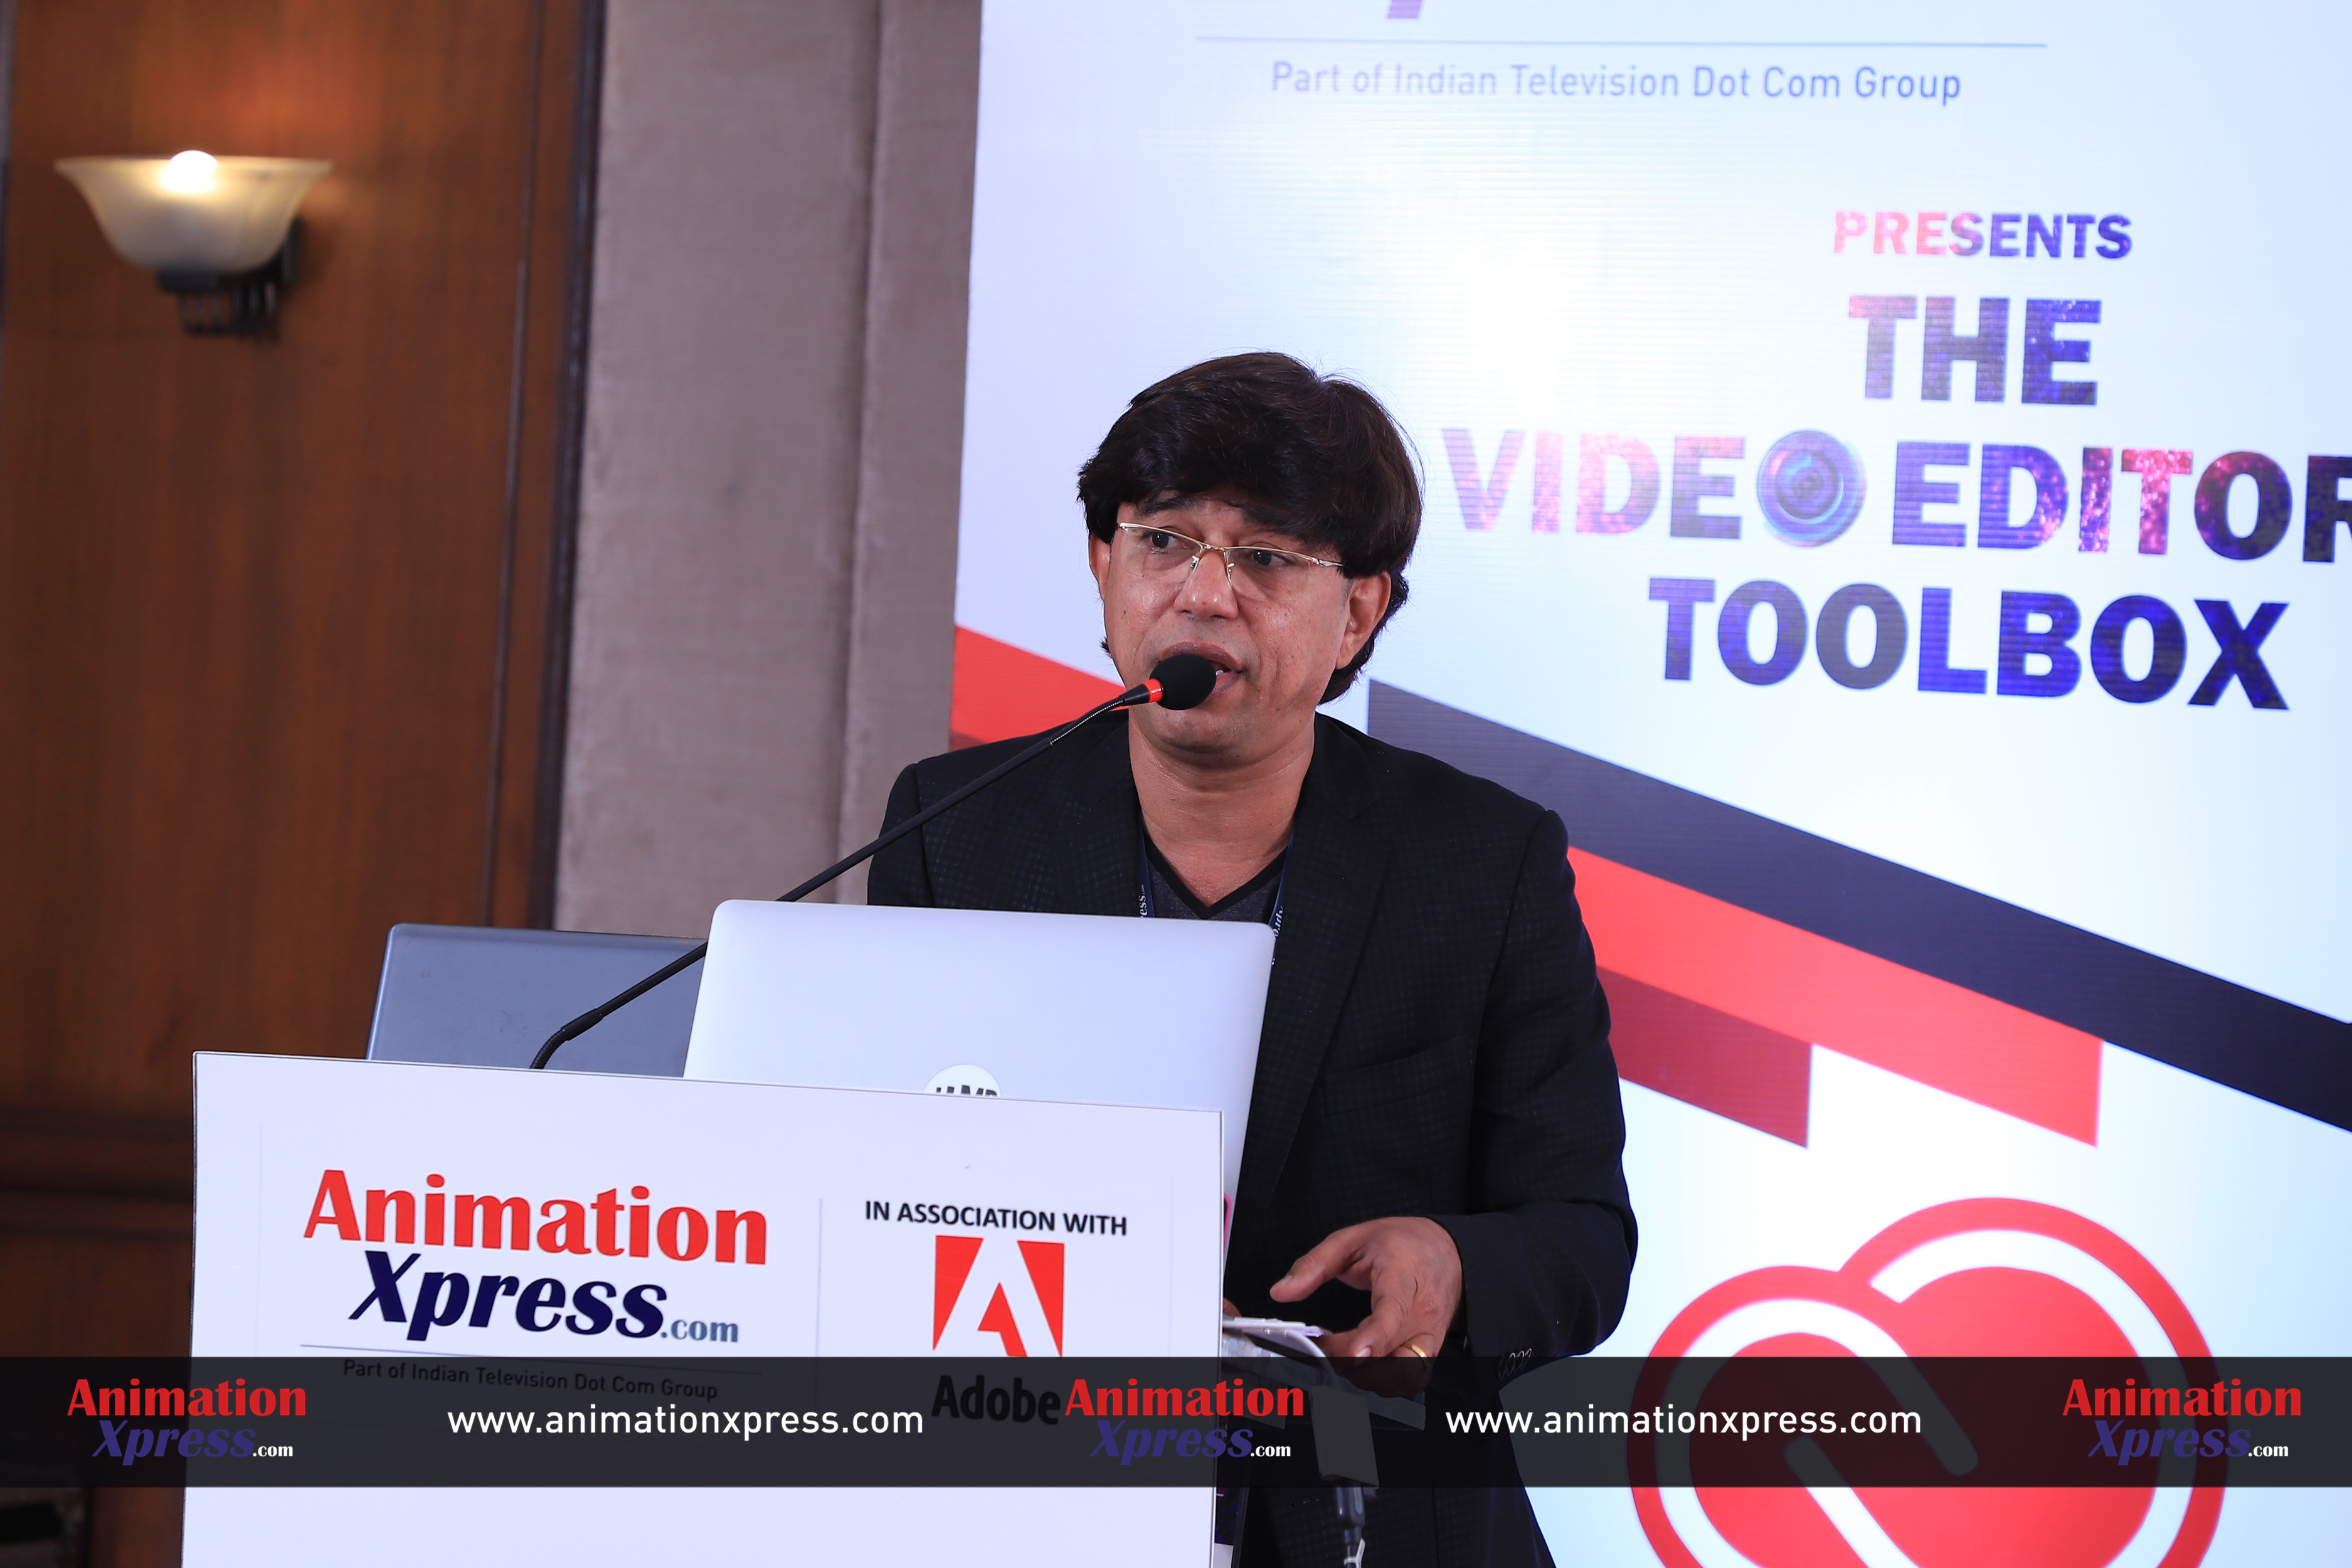 AnimationXpress founder, CEO, and editor-in-chief Ail Wanvari addressing the